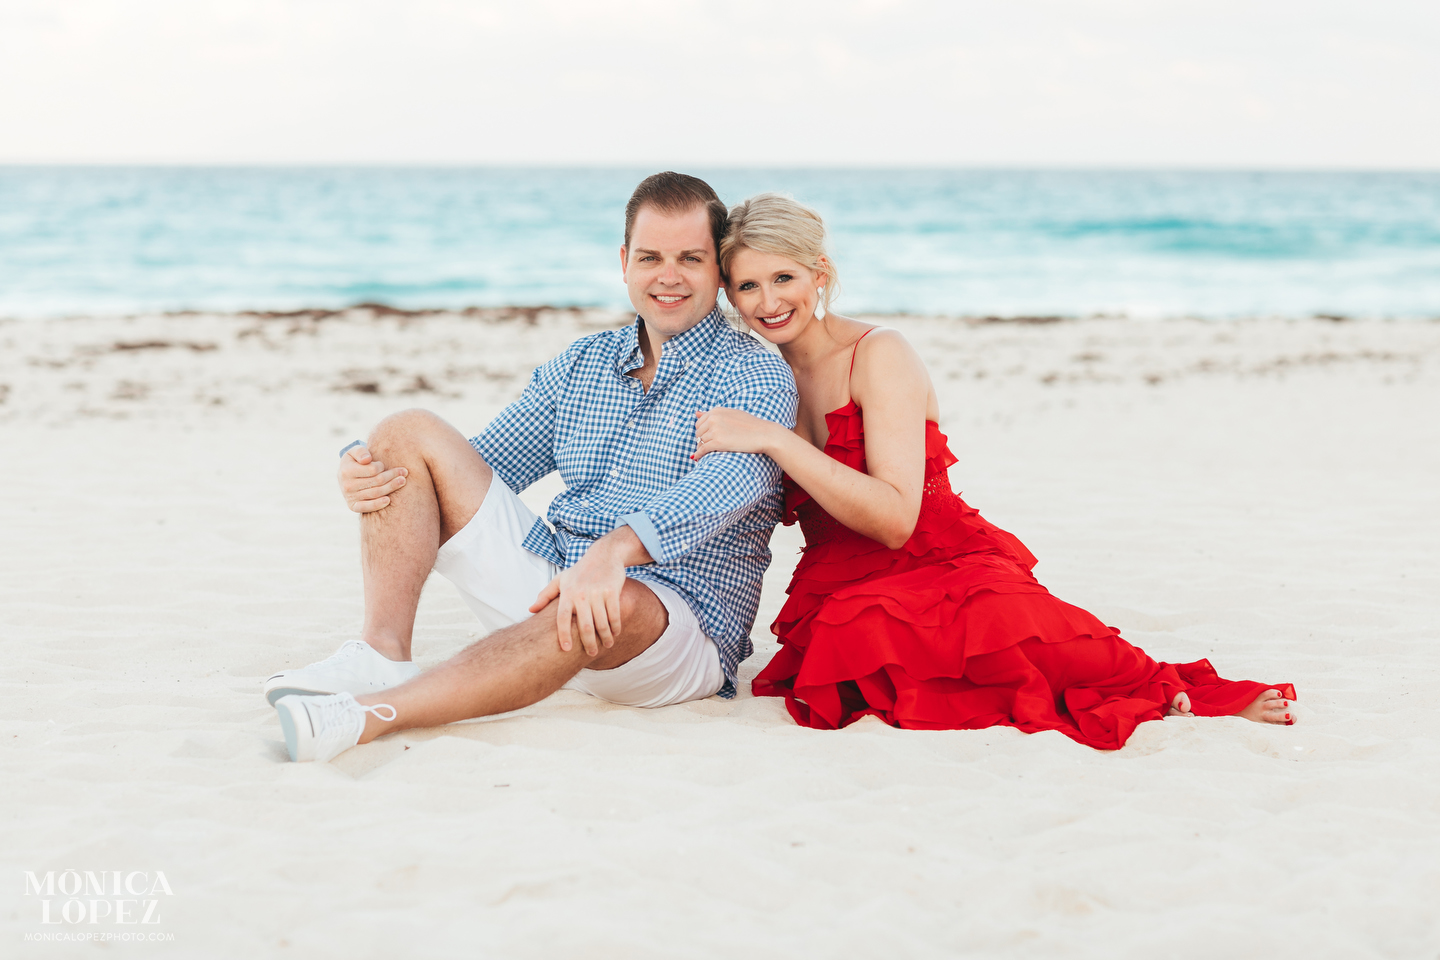 Cancun Beach Engagement Pictures by Monica Lopez Photography